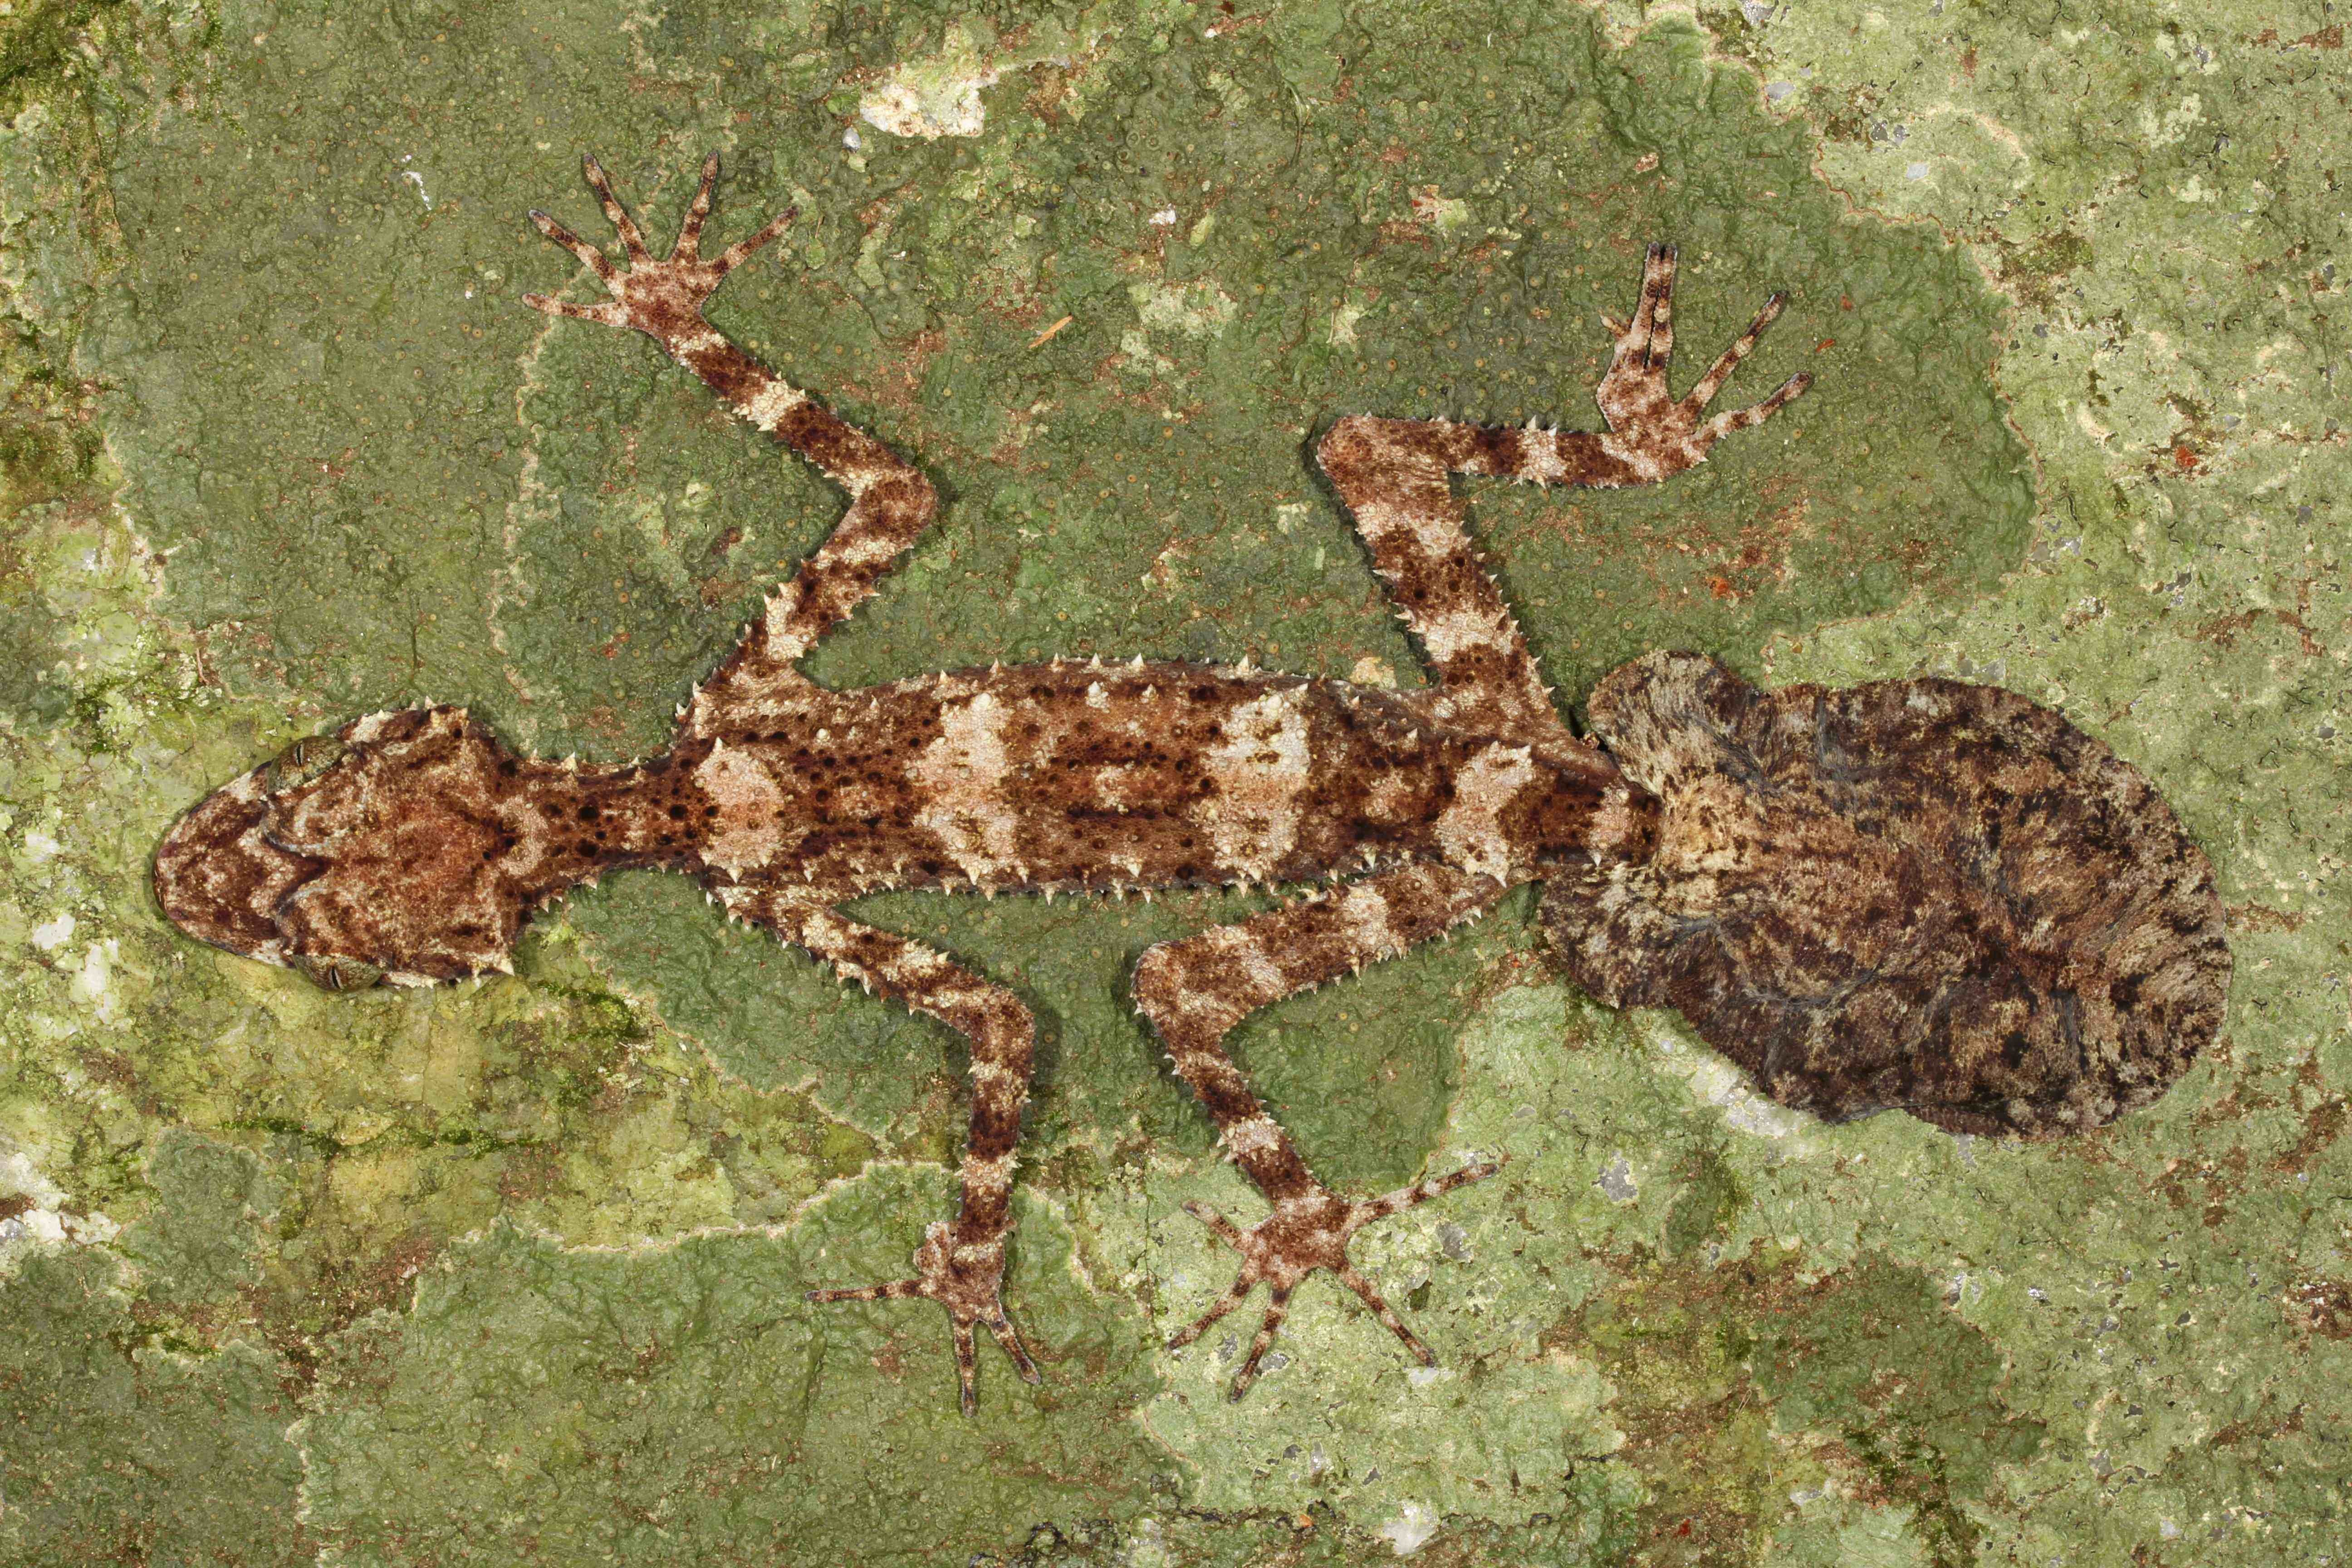 Image of Cape Melville leaf-tailed gecko